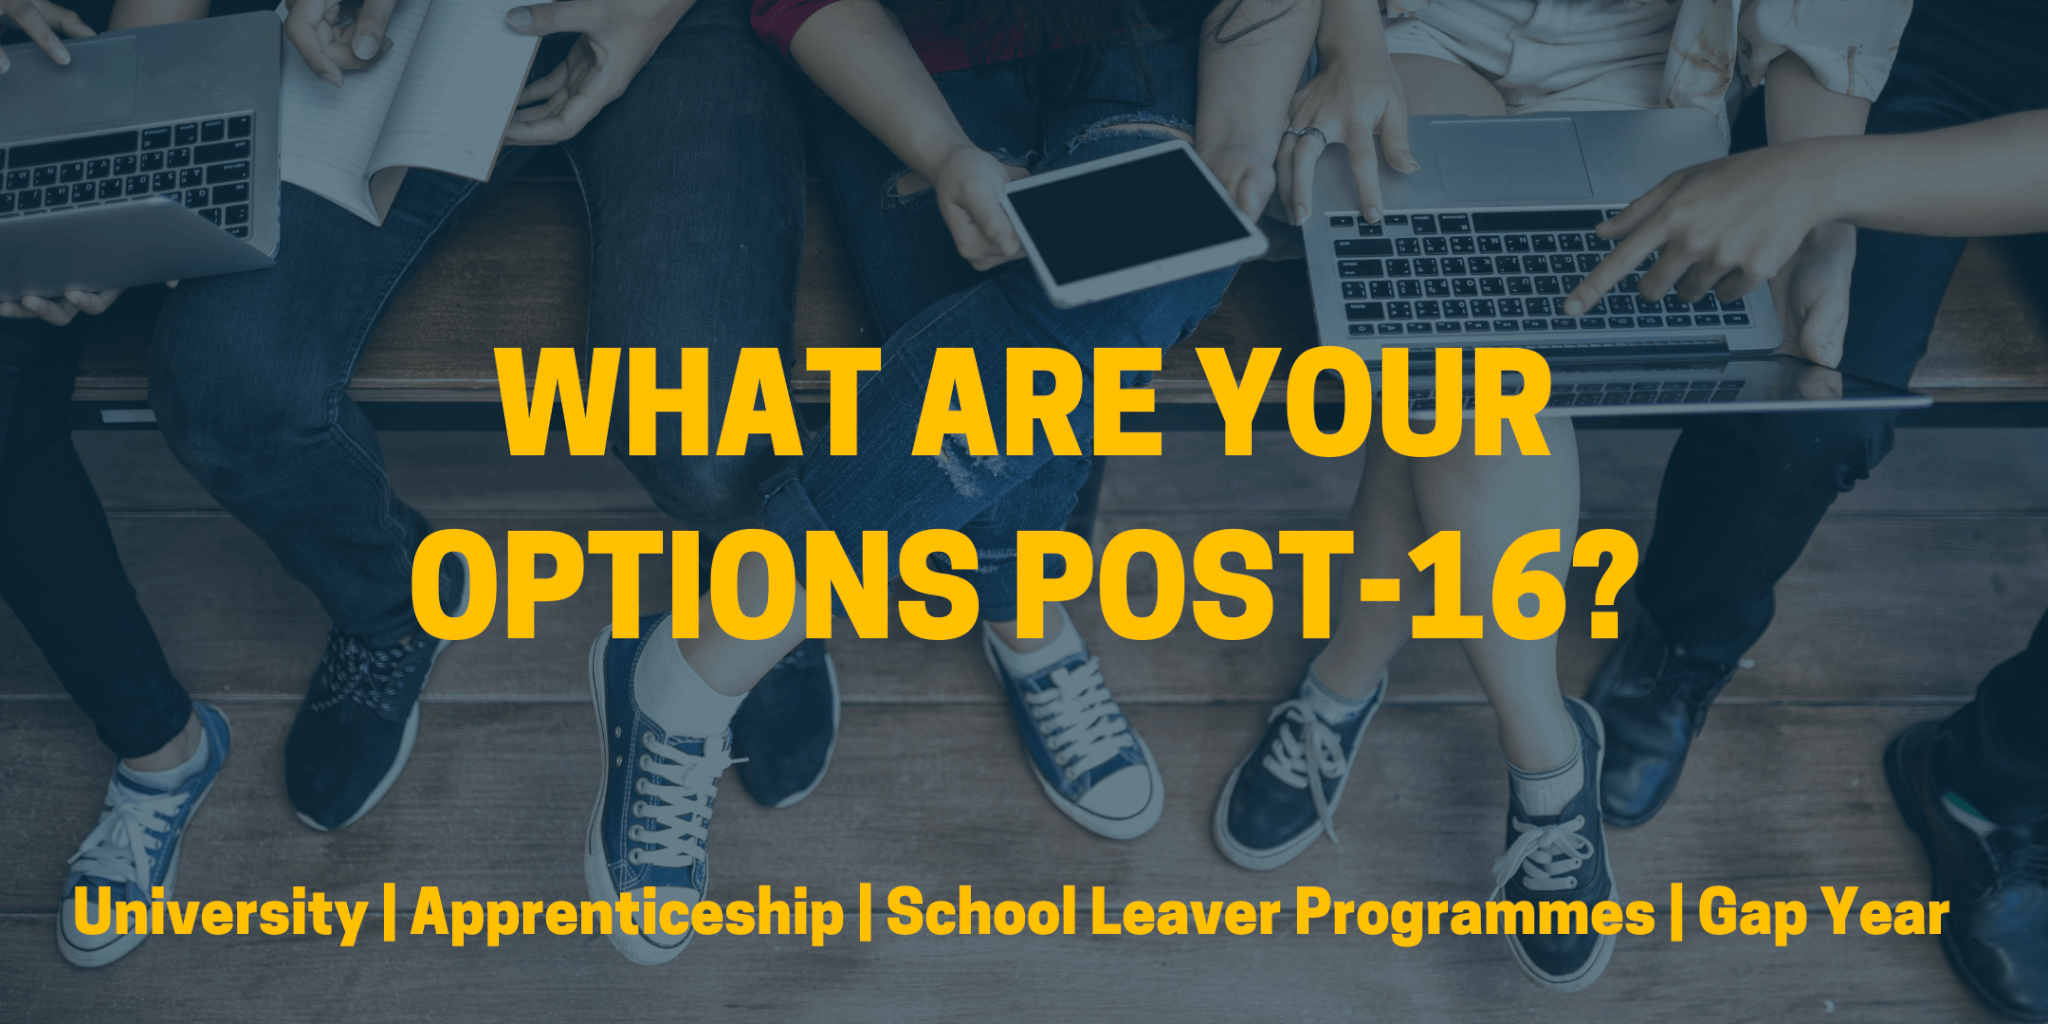 Apprenticeships or University? What is the right option for you?